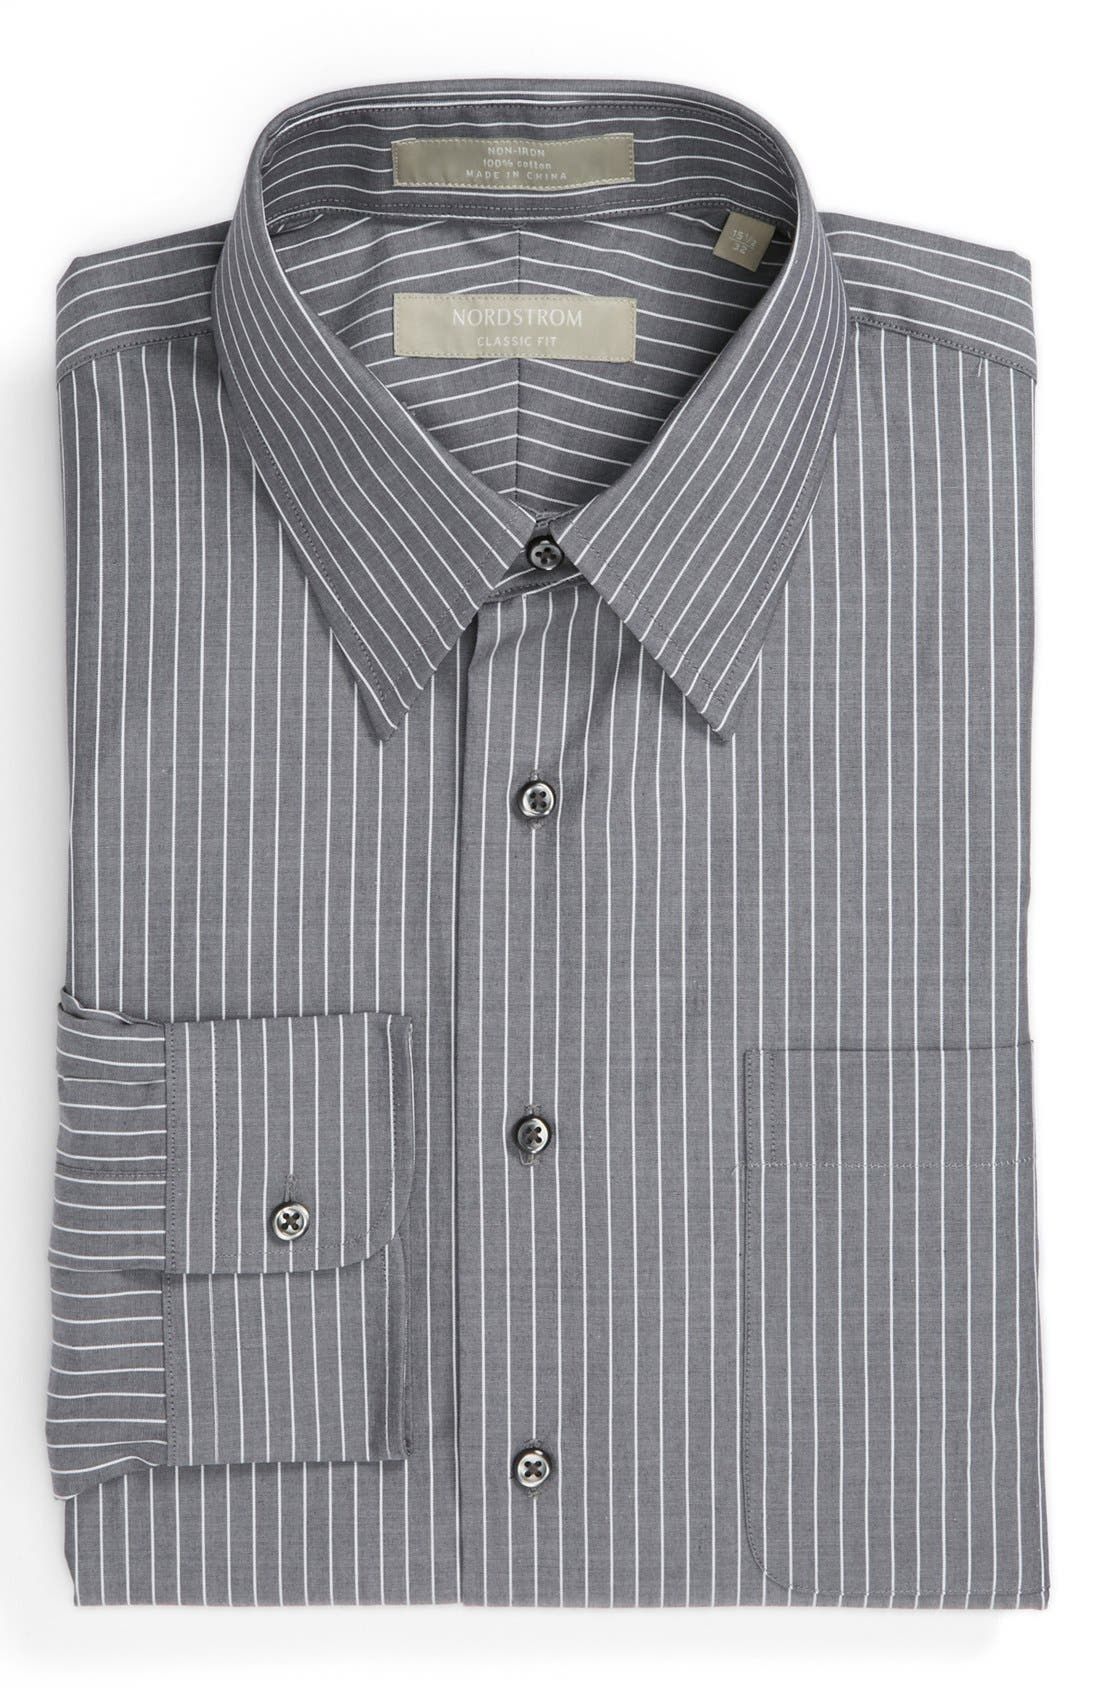 Alternate Image 1 Selected - Nordstrom Classic Fit Non-Iron Dress Shirt